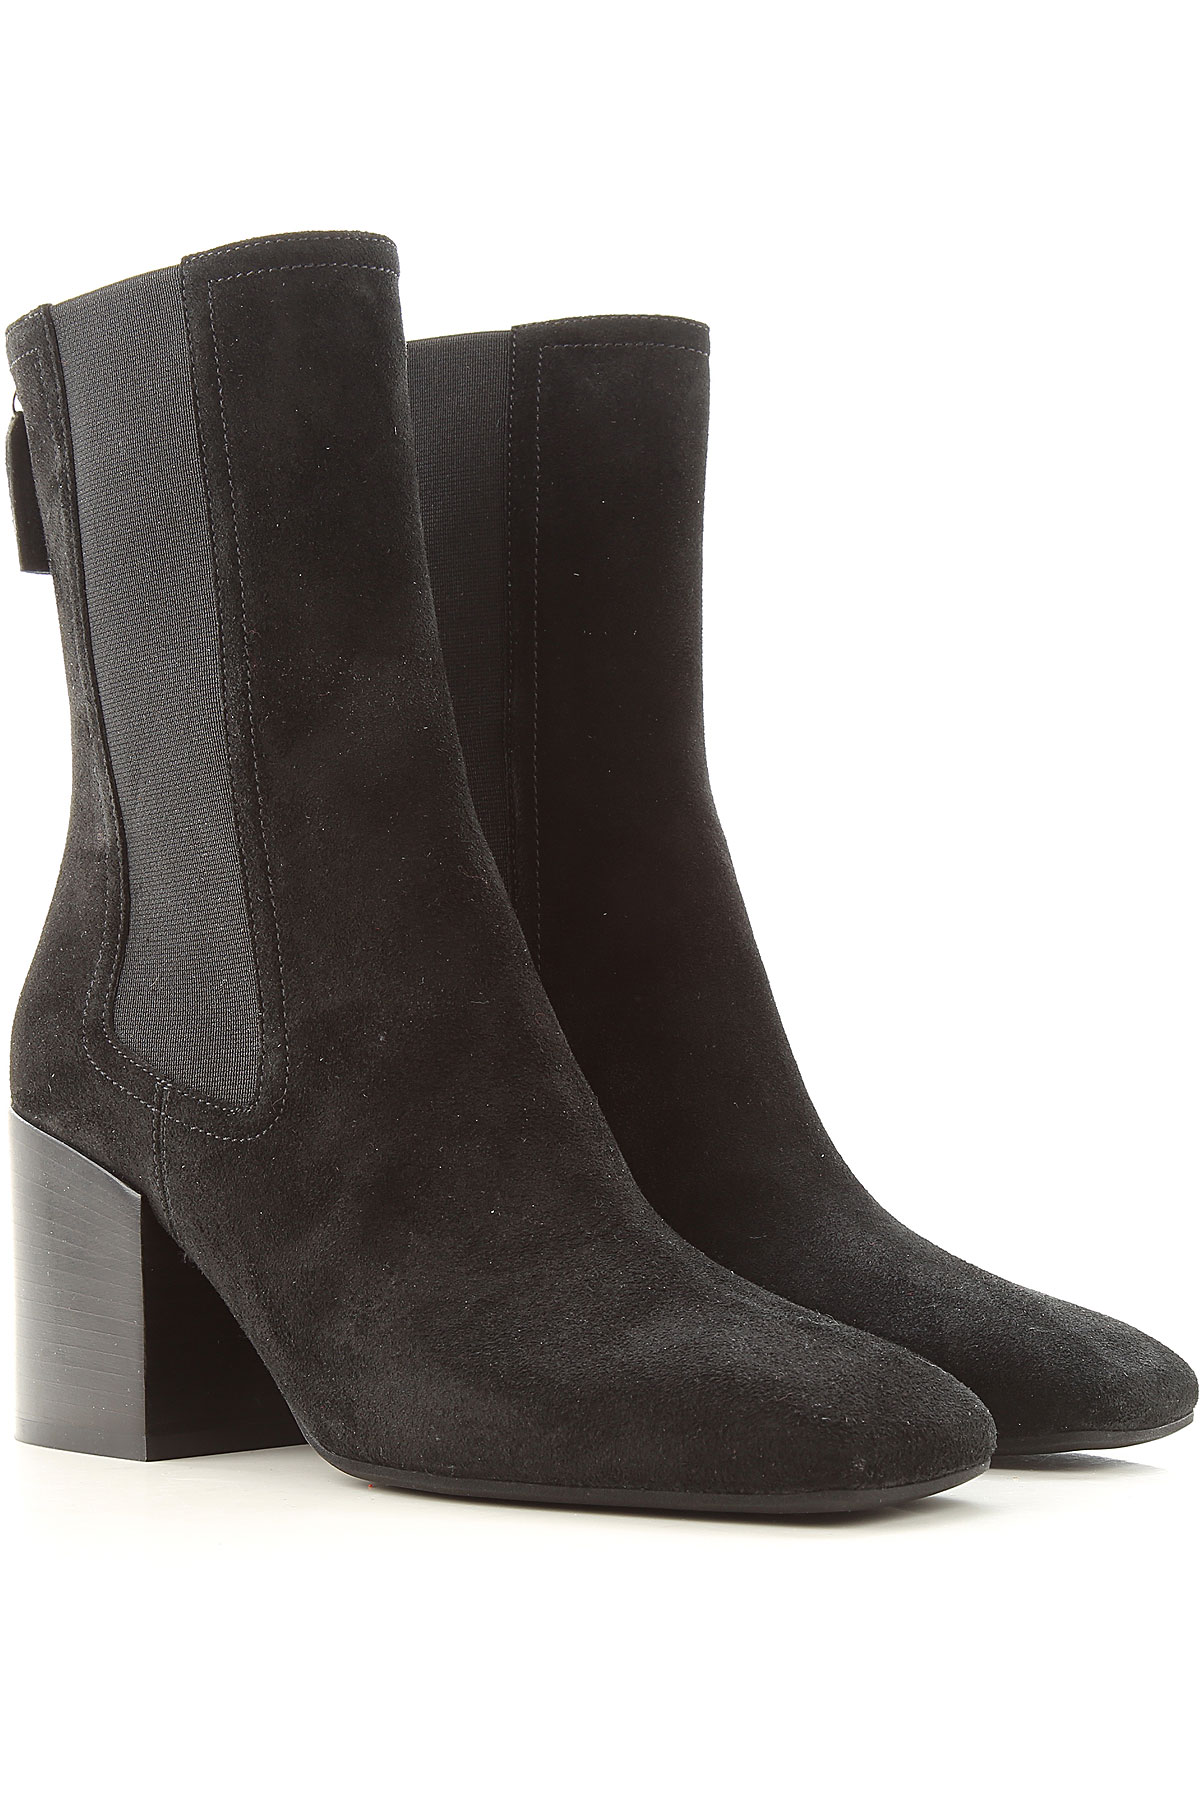 Lella Baldi Boots for Women, Booties On Sale, Black, Suede leather, 2019, 6 7 8 9